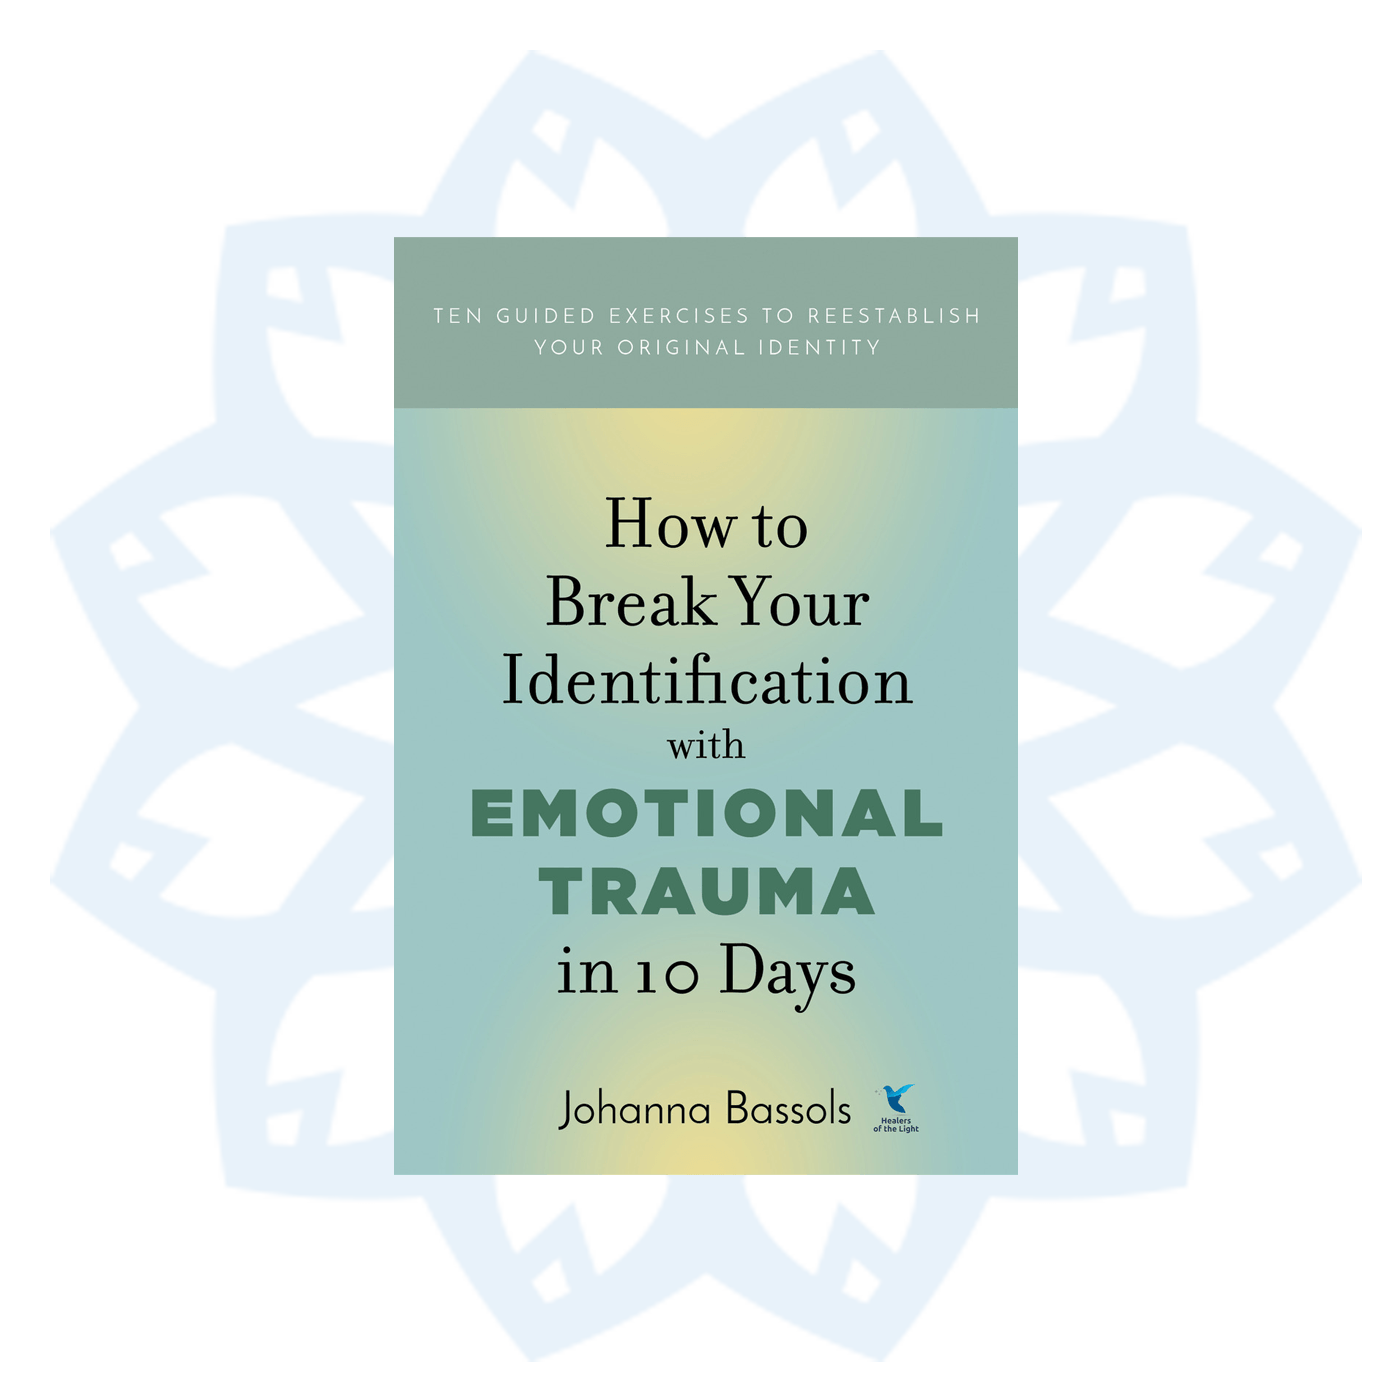 How to Break Your Identification with Emotional Trauma